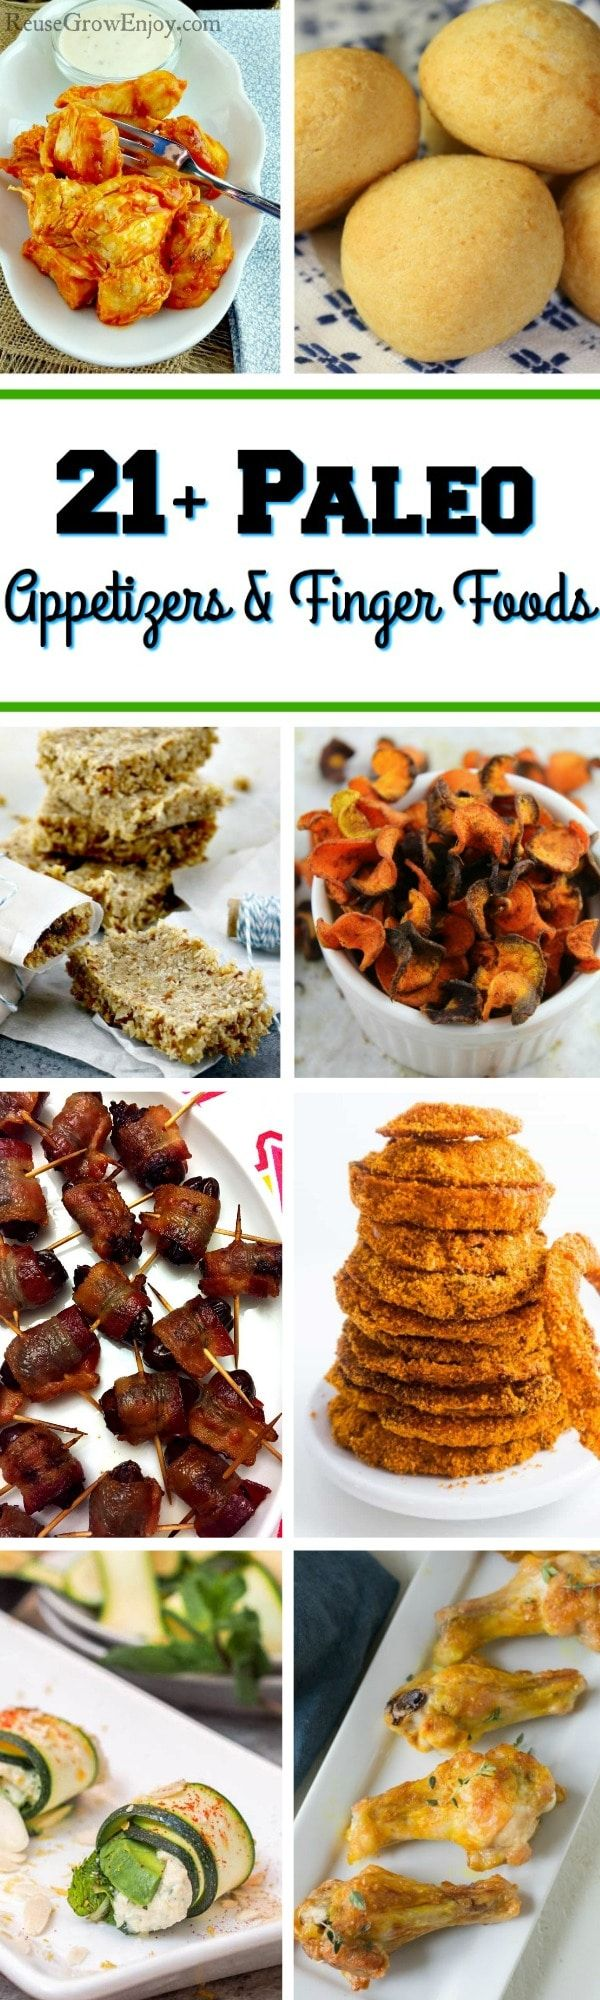 On The Paleo Diet And Need Some Party Food Ideas I Have Rounded Up Over 21 Paleo Appetizers And Paleo Finger Food Recip Paleo Appetizers Food How To Eat Paleo